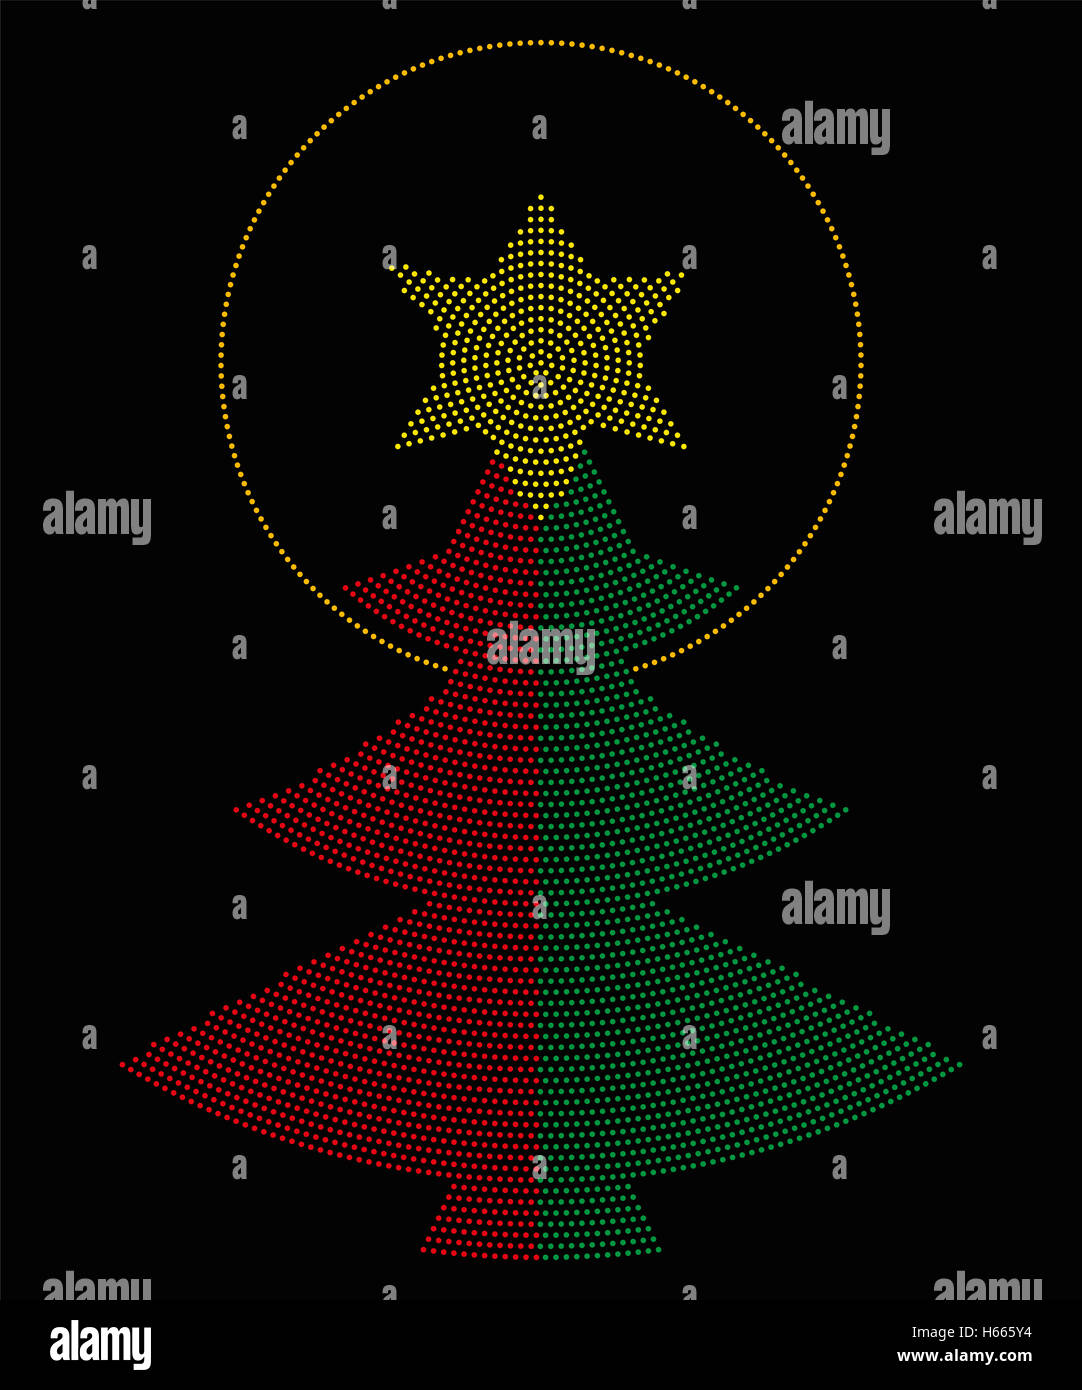 Christmas tree symbol radial dot pattern. Single tree in red and green color, a yellow six-pointed star on top with - Stock Image